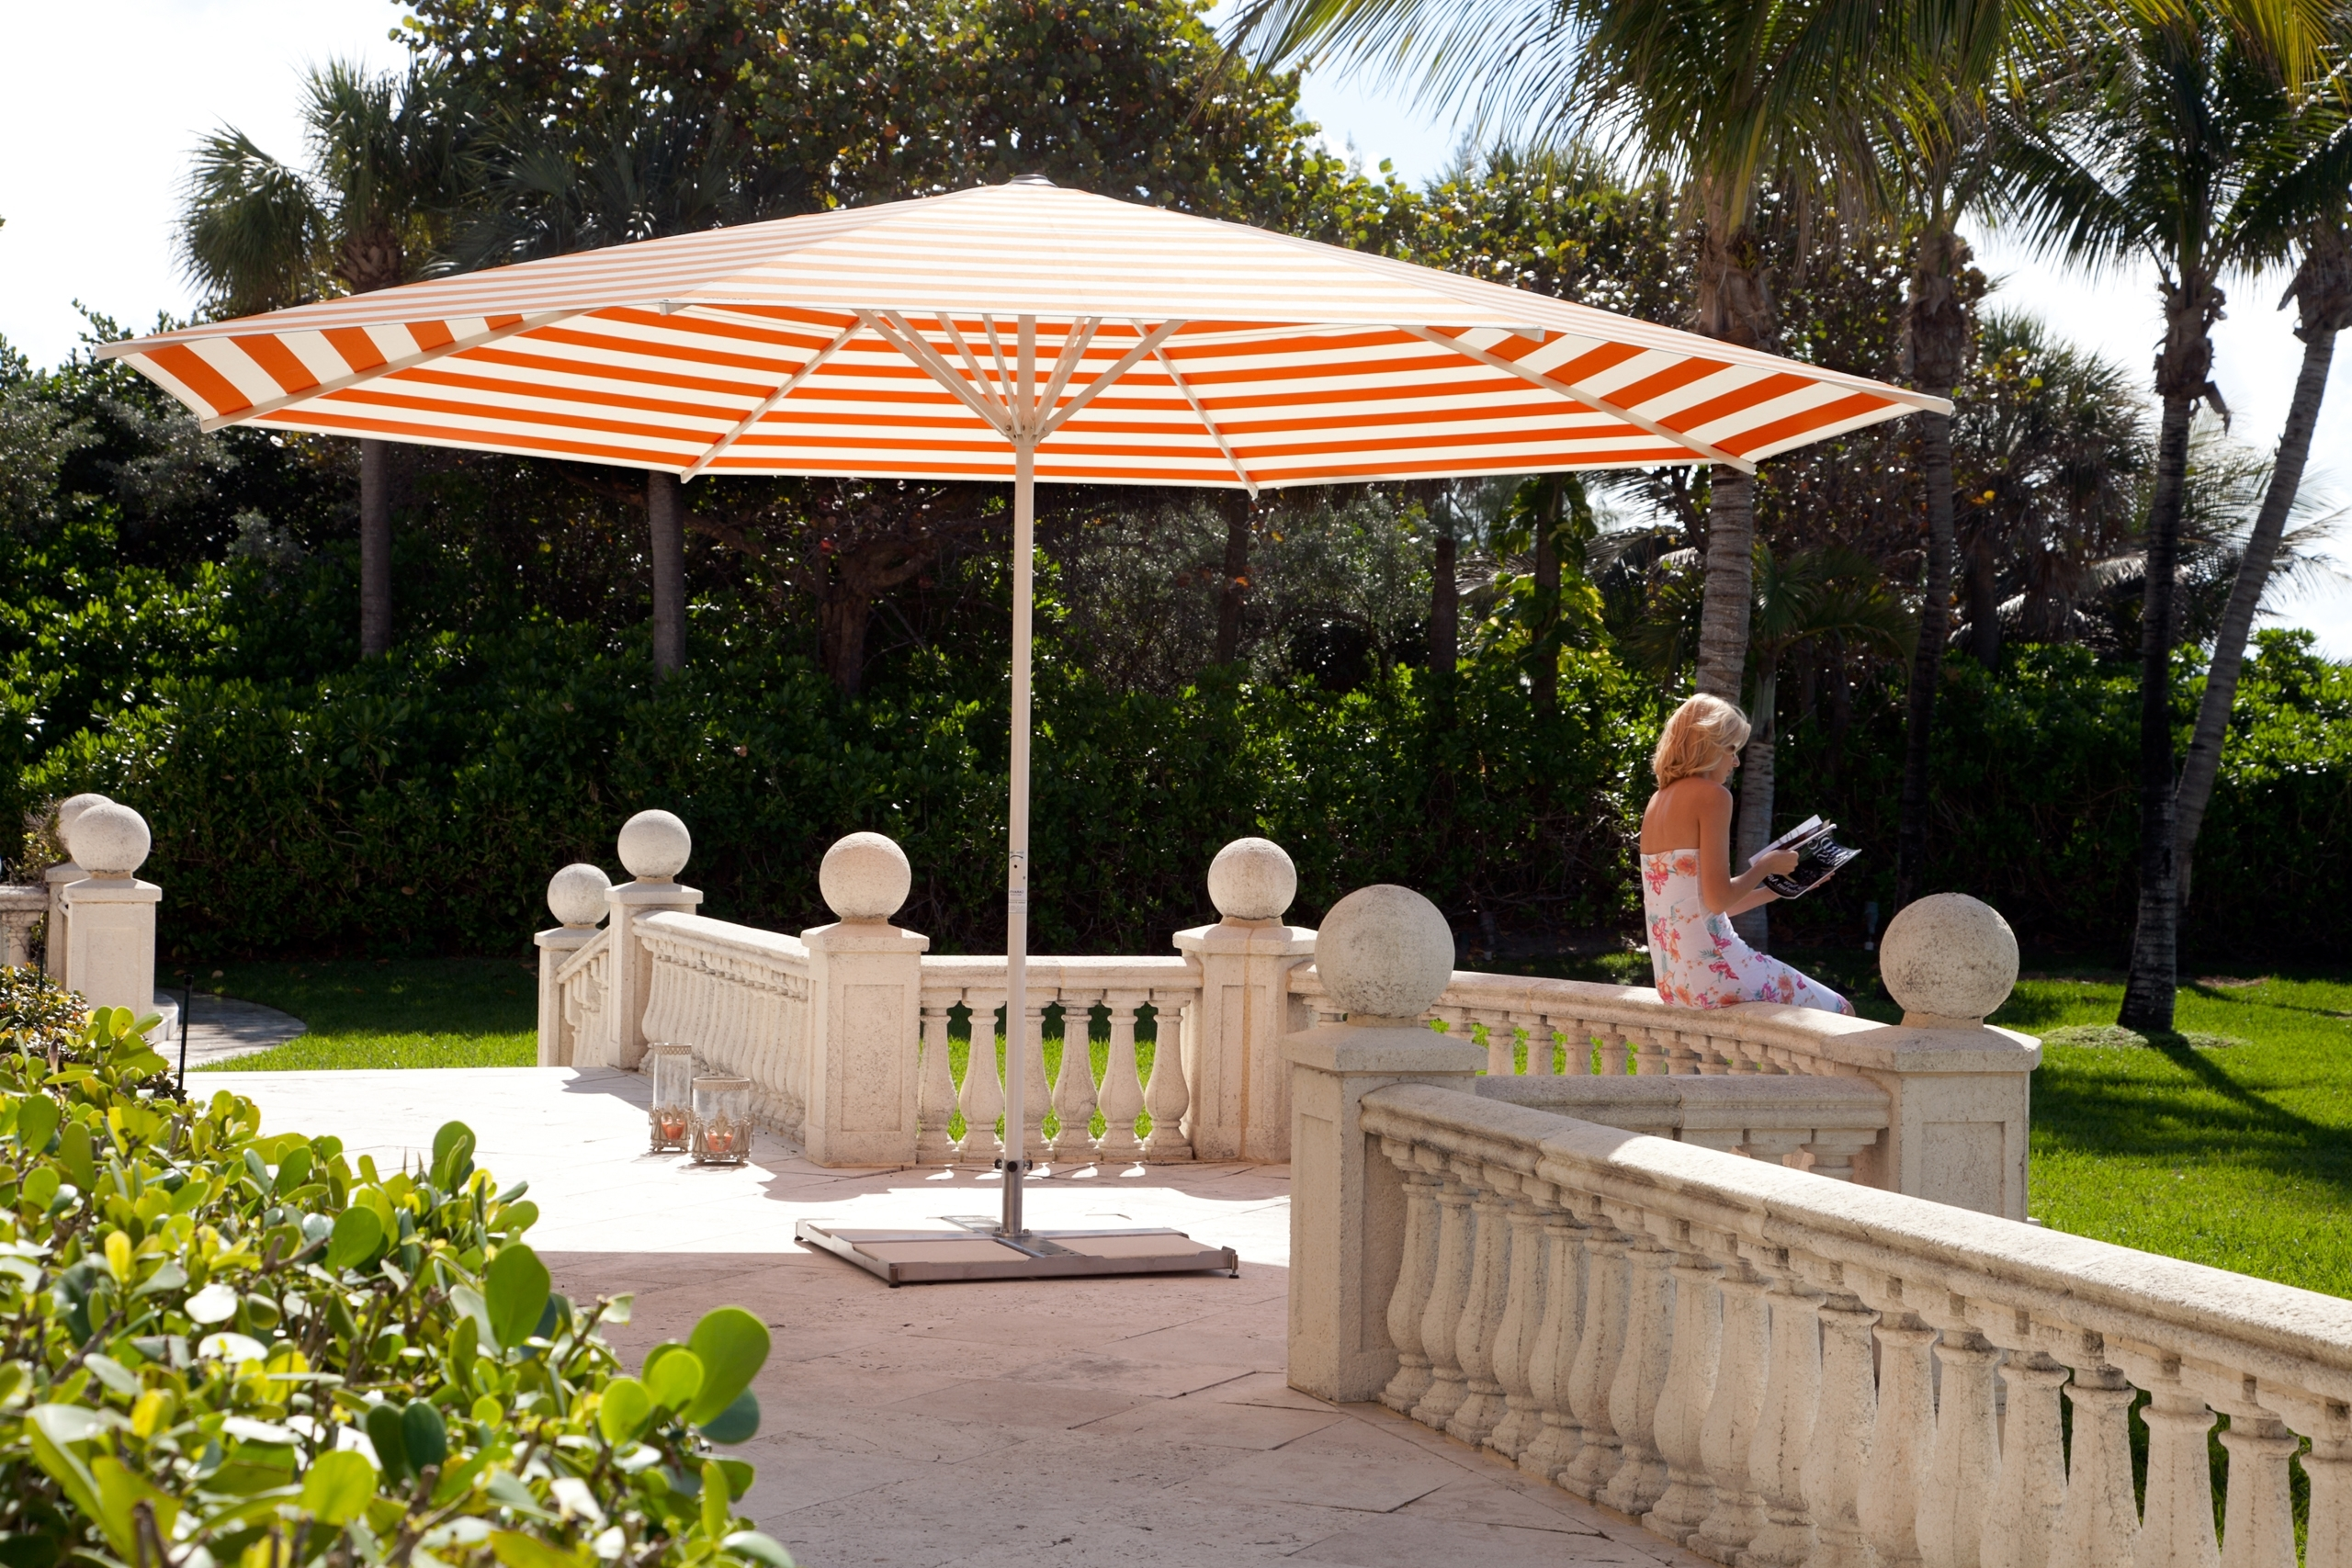 Most Popular Jumbo Patio Umbrellas With Regard To Round Dimension For Giant Patio Umbrellas (View 8 of 20)